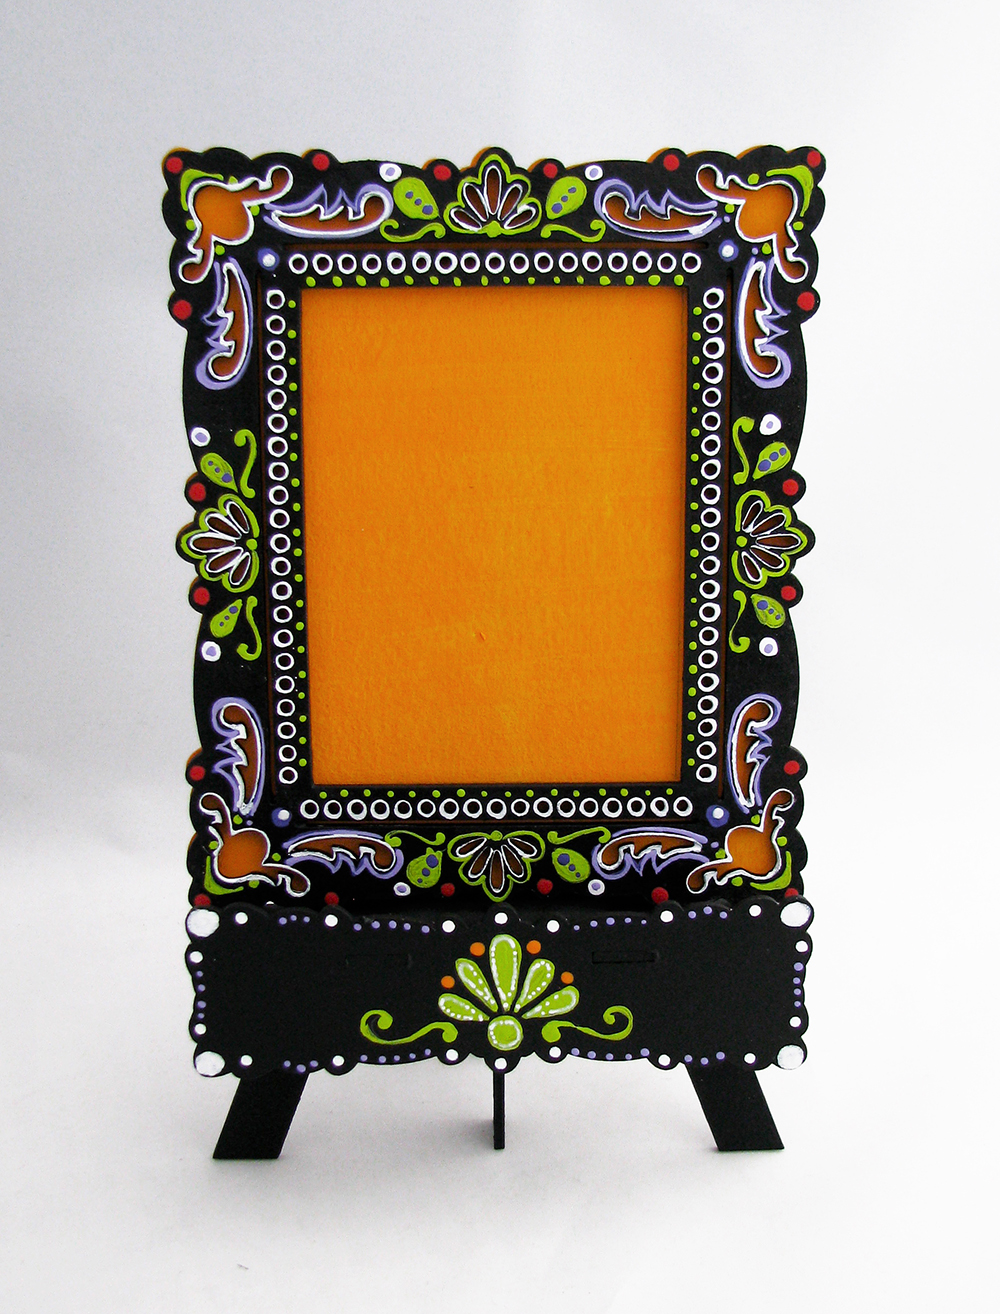 Gypsy Soul Laser Cuts Day Of The Dead Frame By Lora